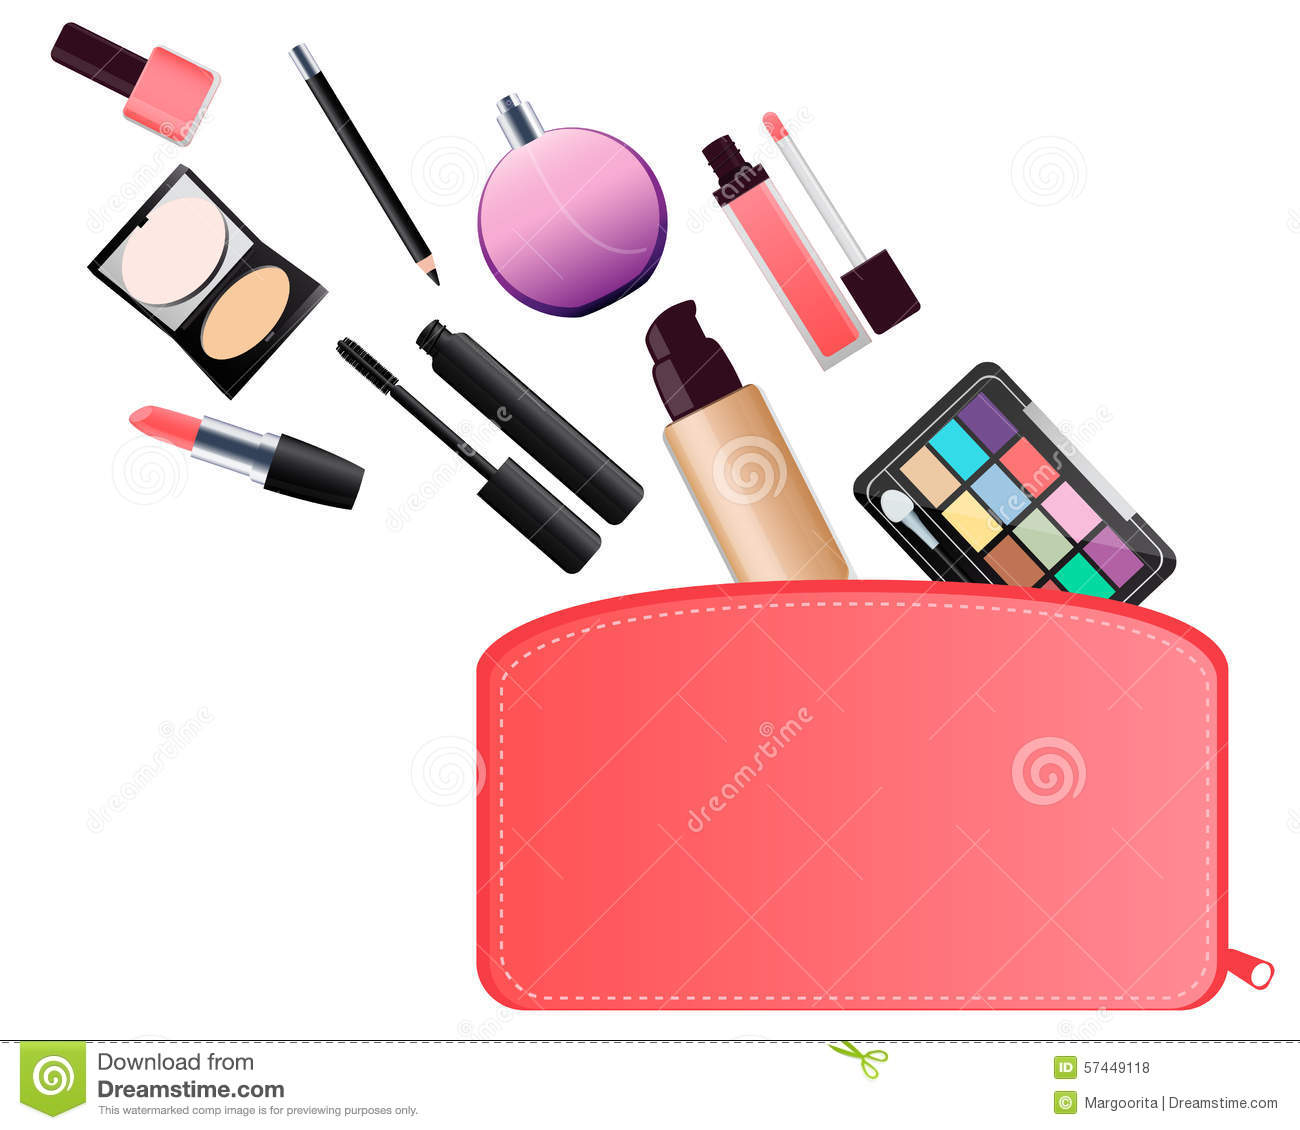 Makeup bag clipart.